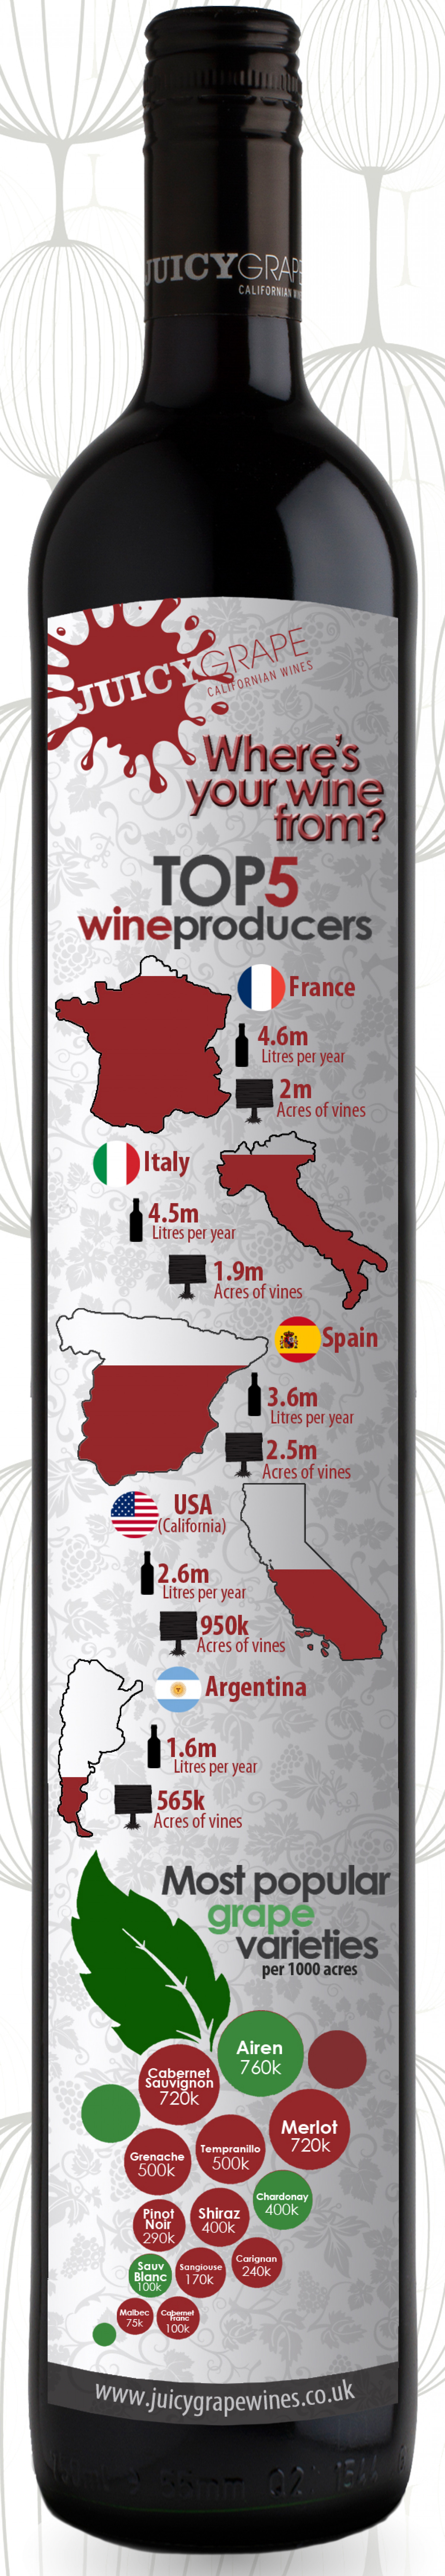 Where's Your Wine From? Infographic